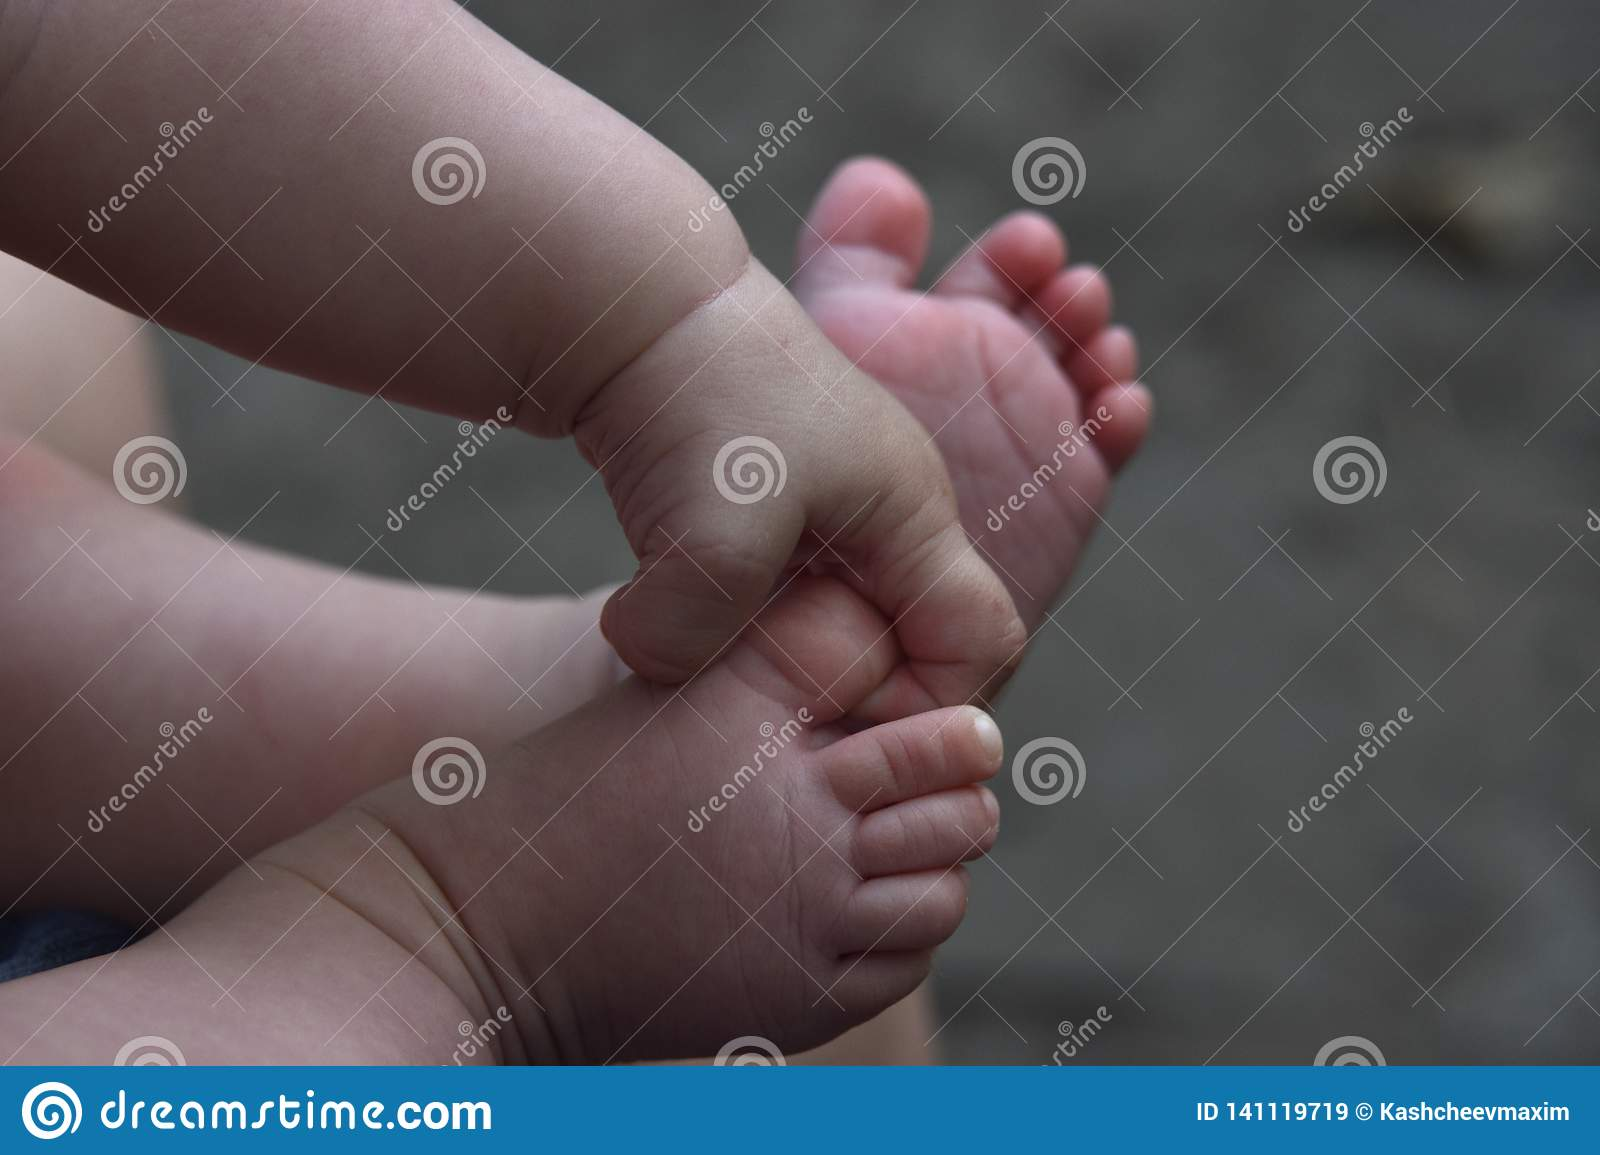 Baby legs and handles close up on gray background